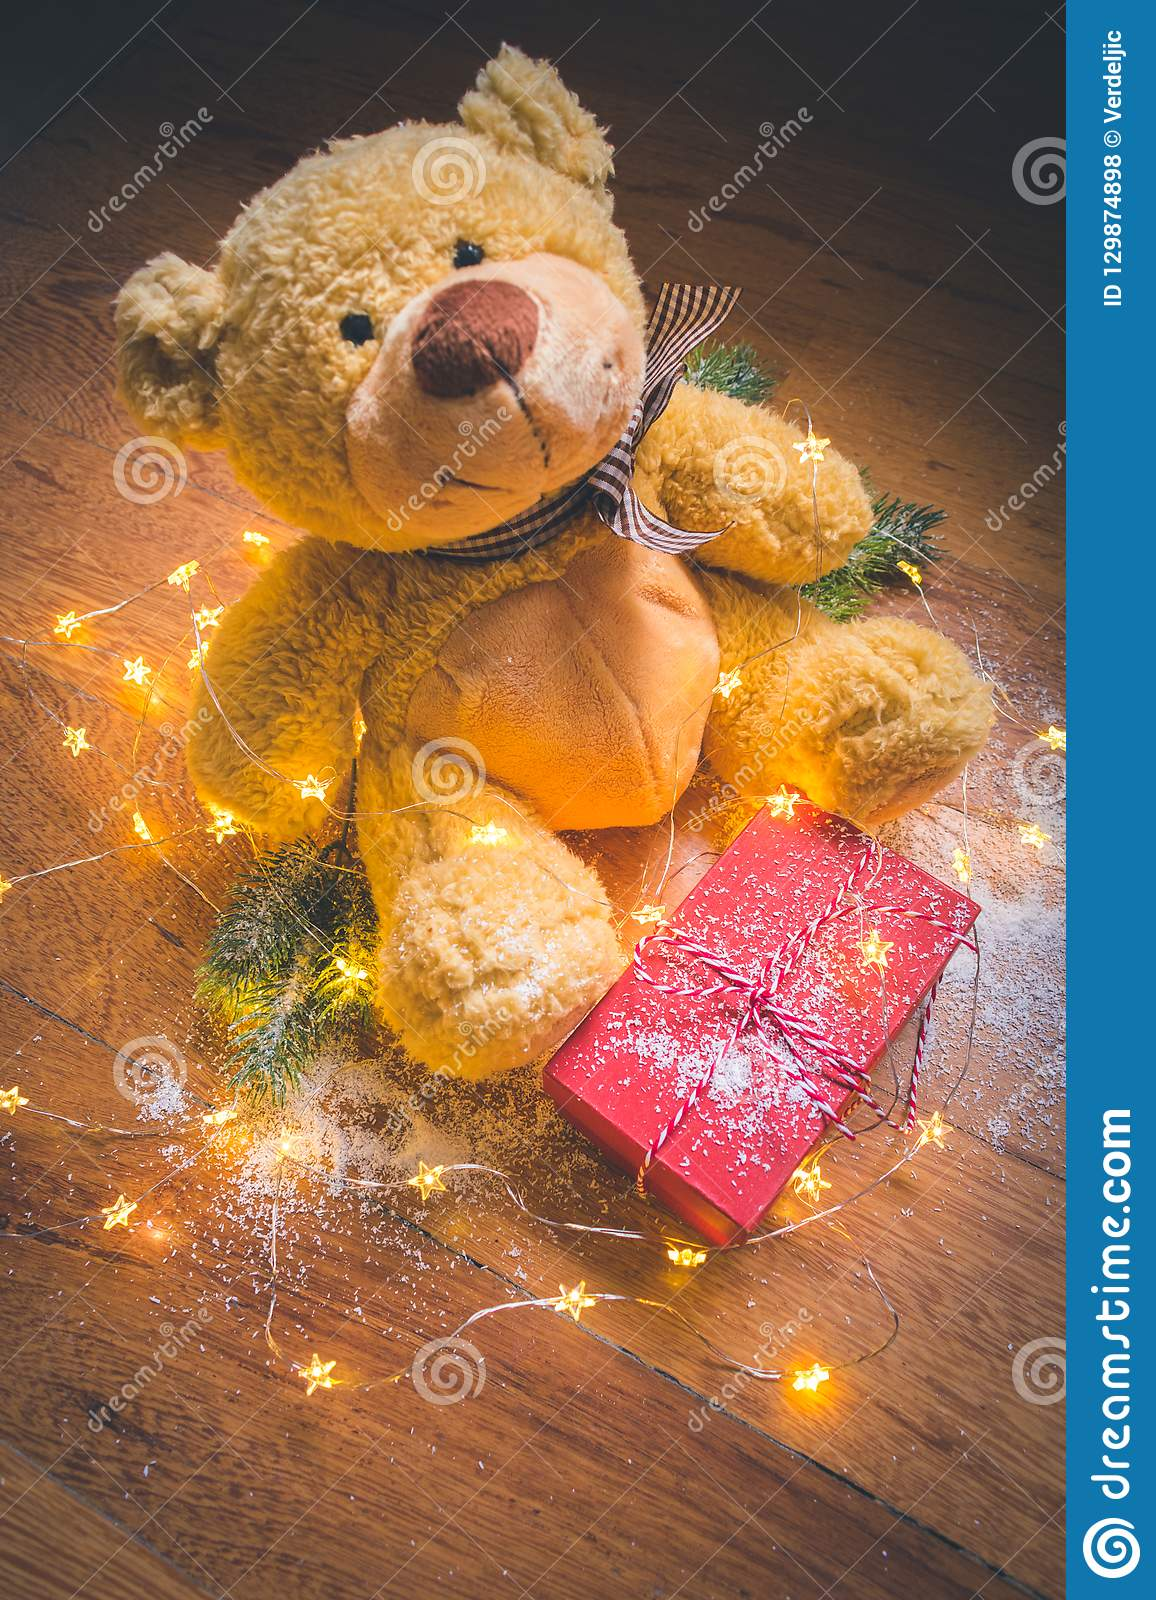 View of a teddy with a red wrapped present, and Christmas decorations on wooden background